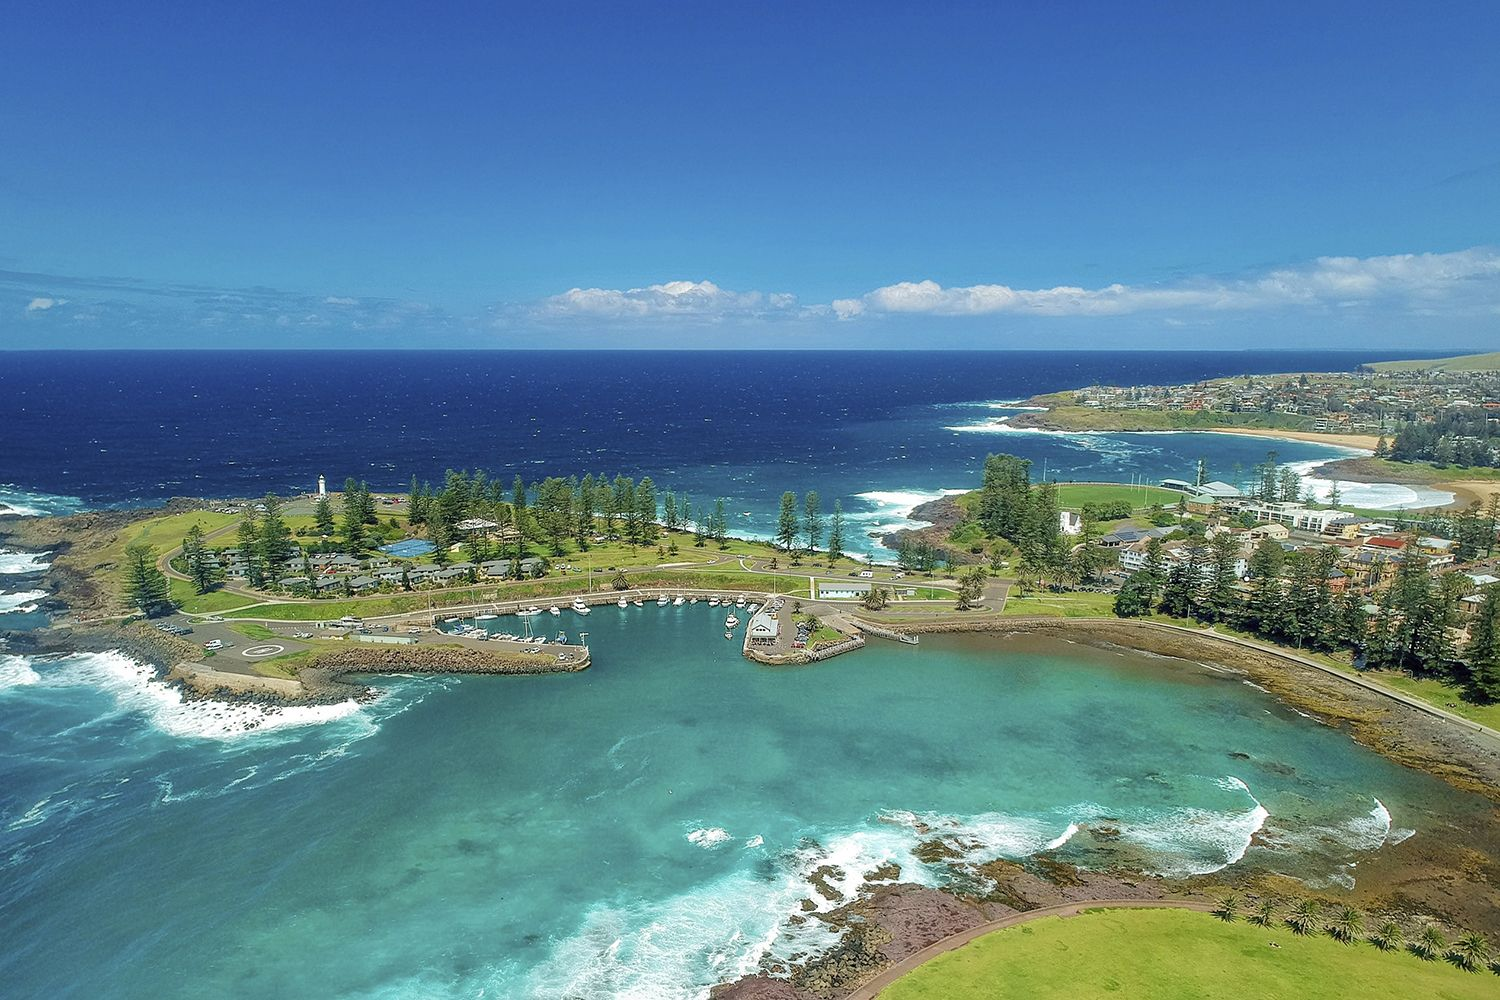 Aerial overlooking Kiama Harbour and the Continental Ocean Pool in Kiama